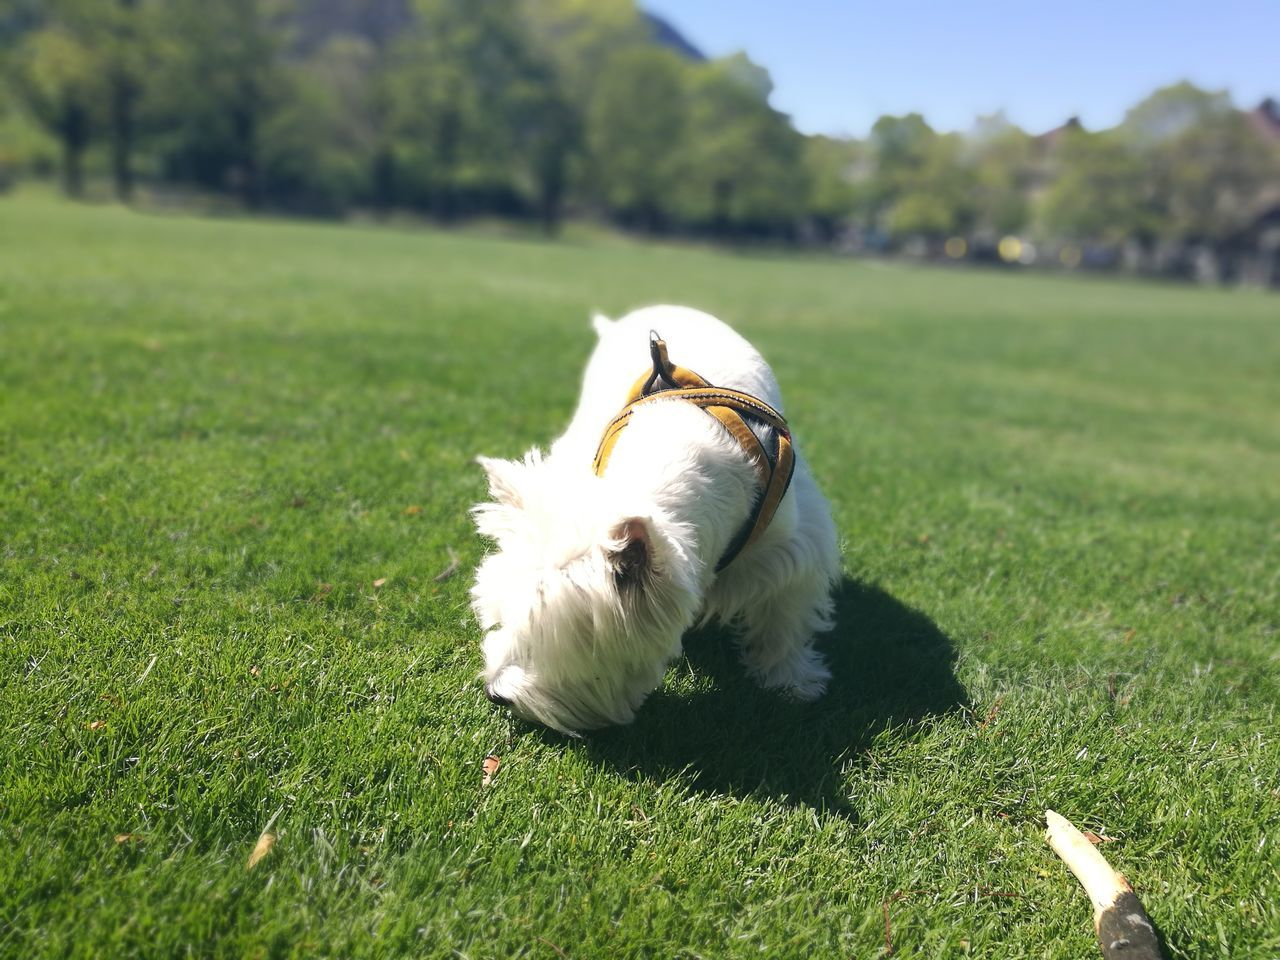 one animal, grass, dog, domestic animals, pets, animal themes, mammal, field, white color, outdoors, day, no people, west highland white terrier, nature, close-up